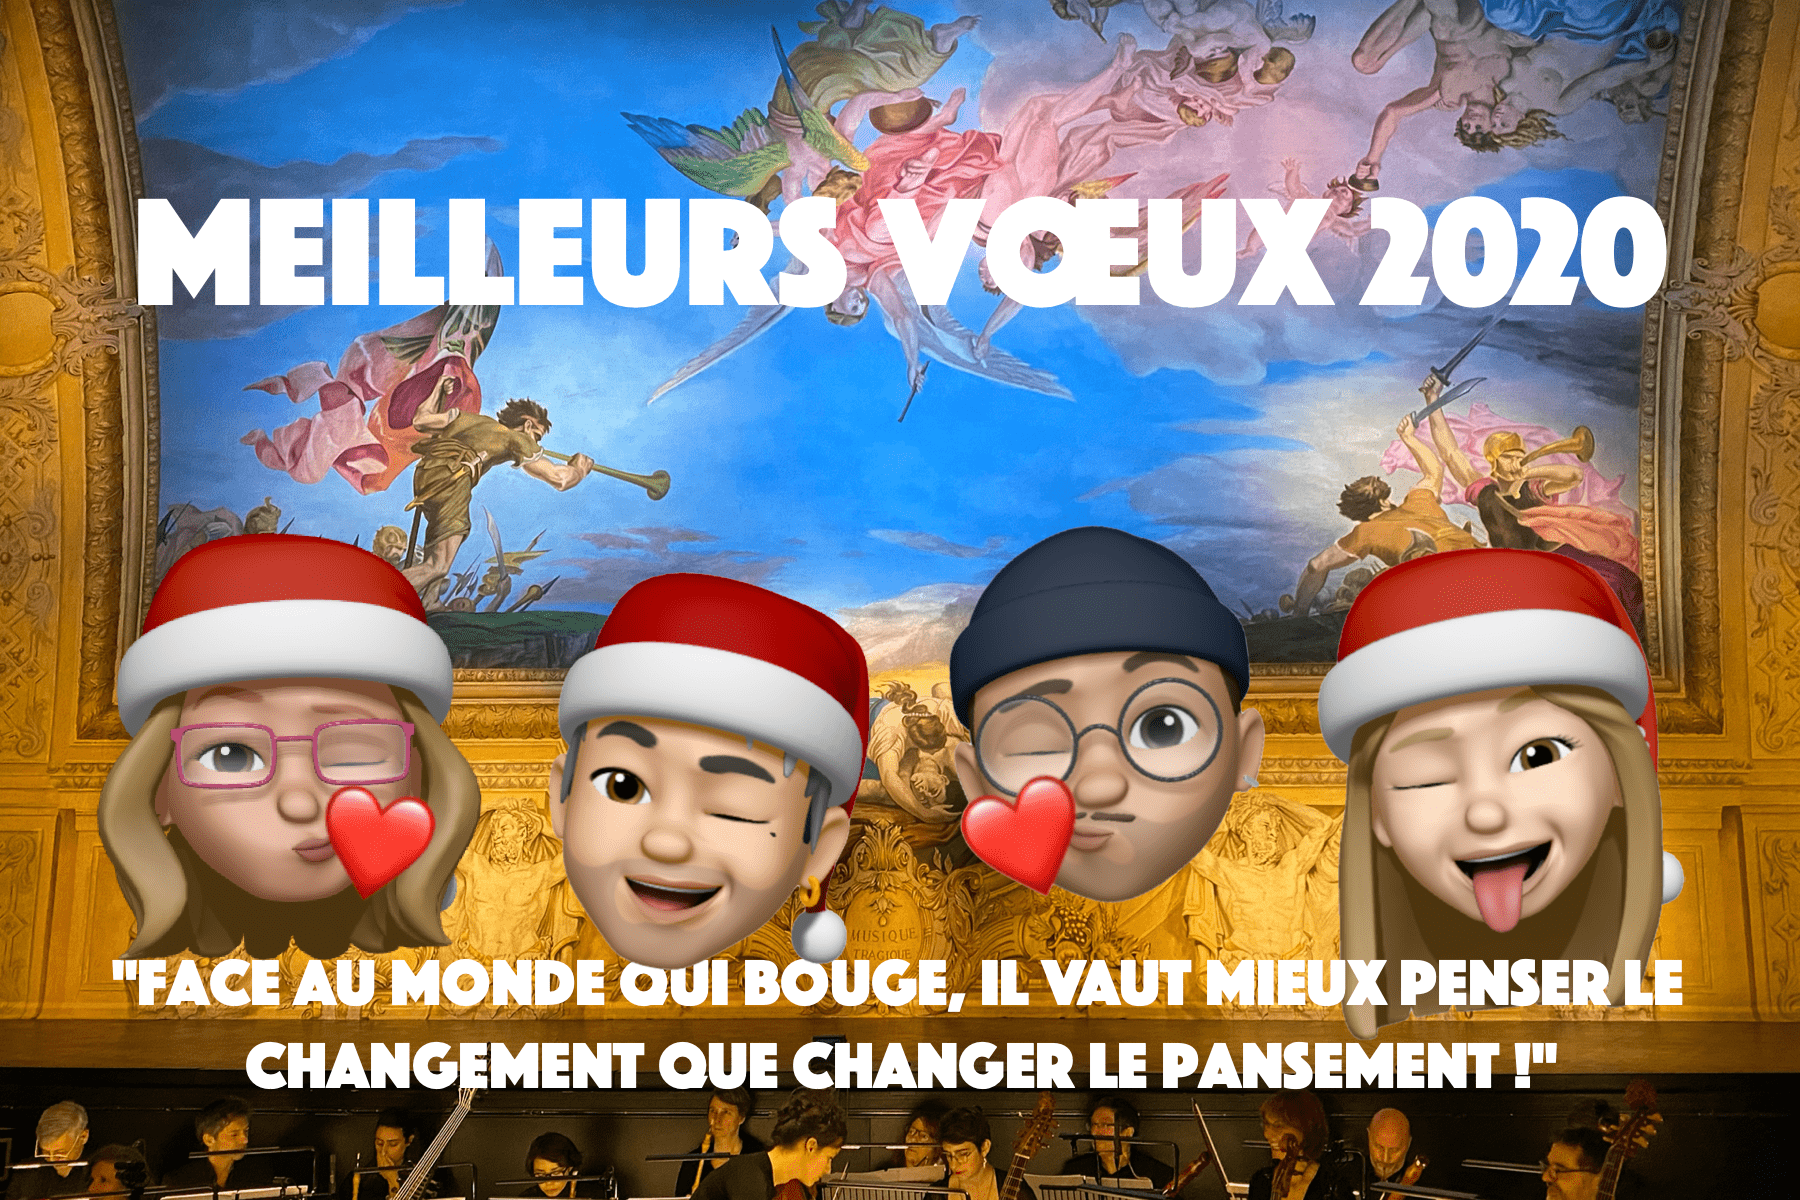 New Year wishes with Fabienne, David, Mathias and Emma's memojis